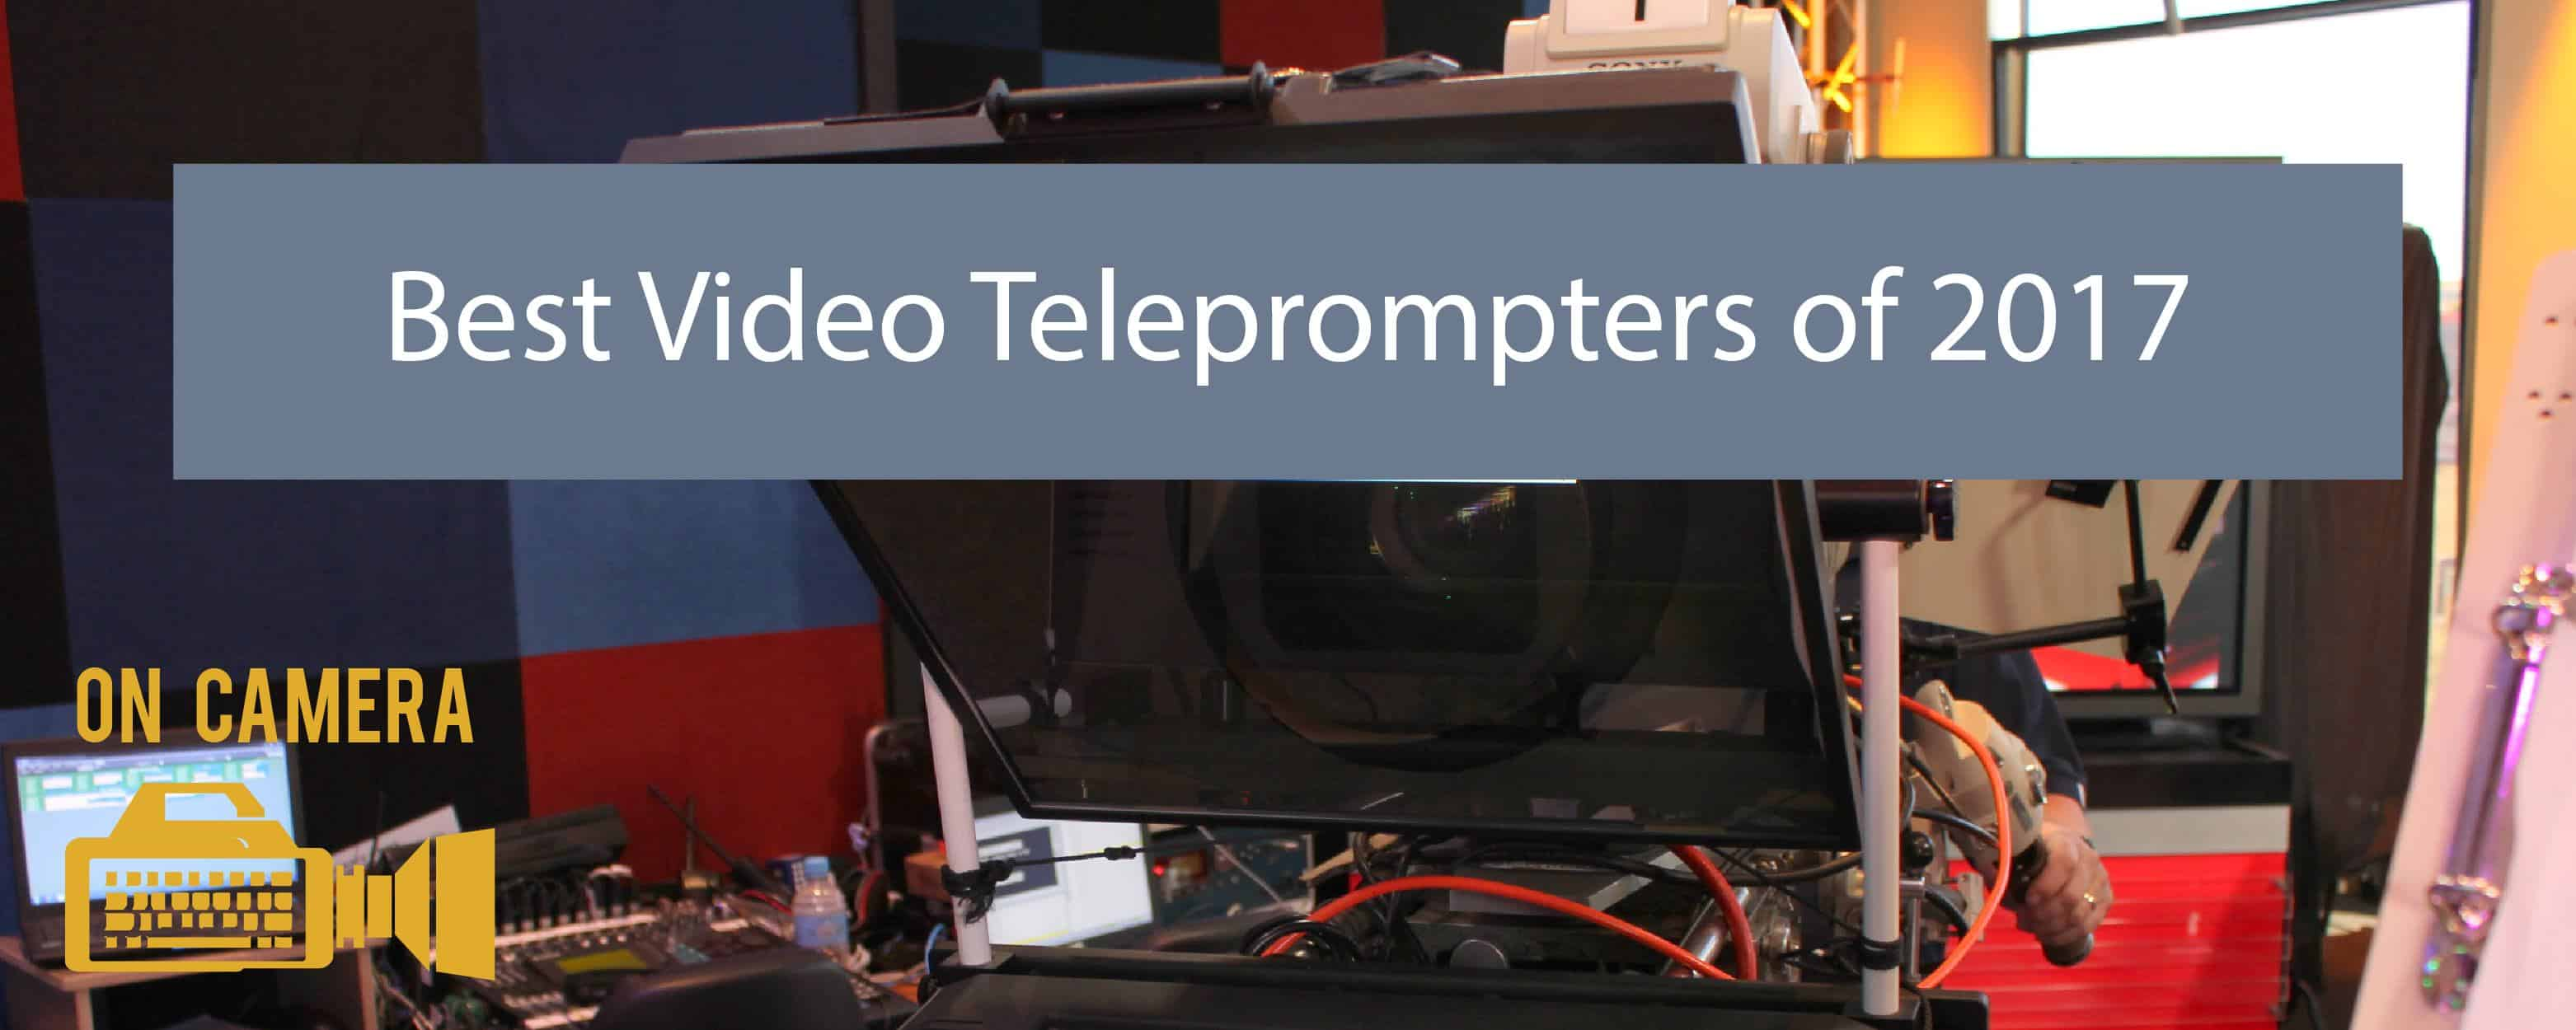 Best Video Teleprompters of 2017   Keynote Content